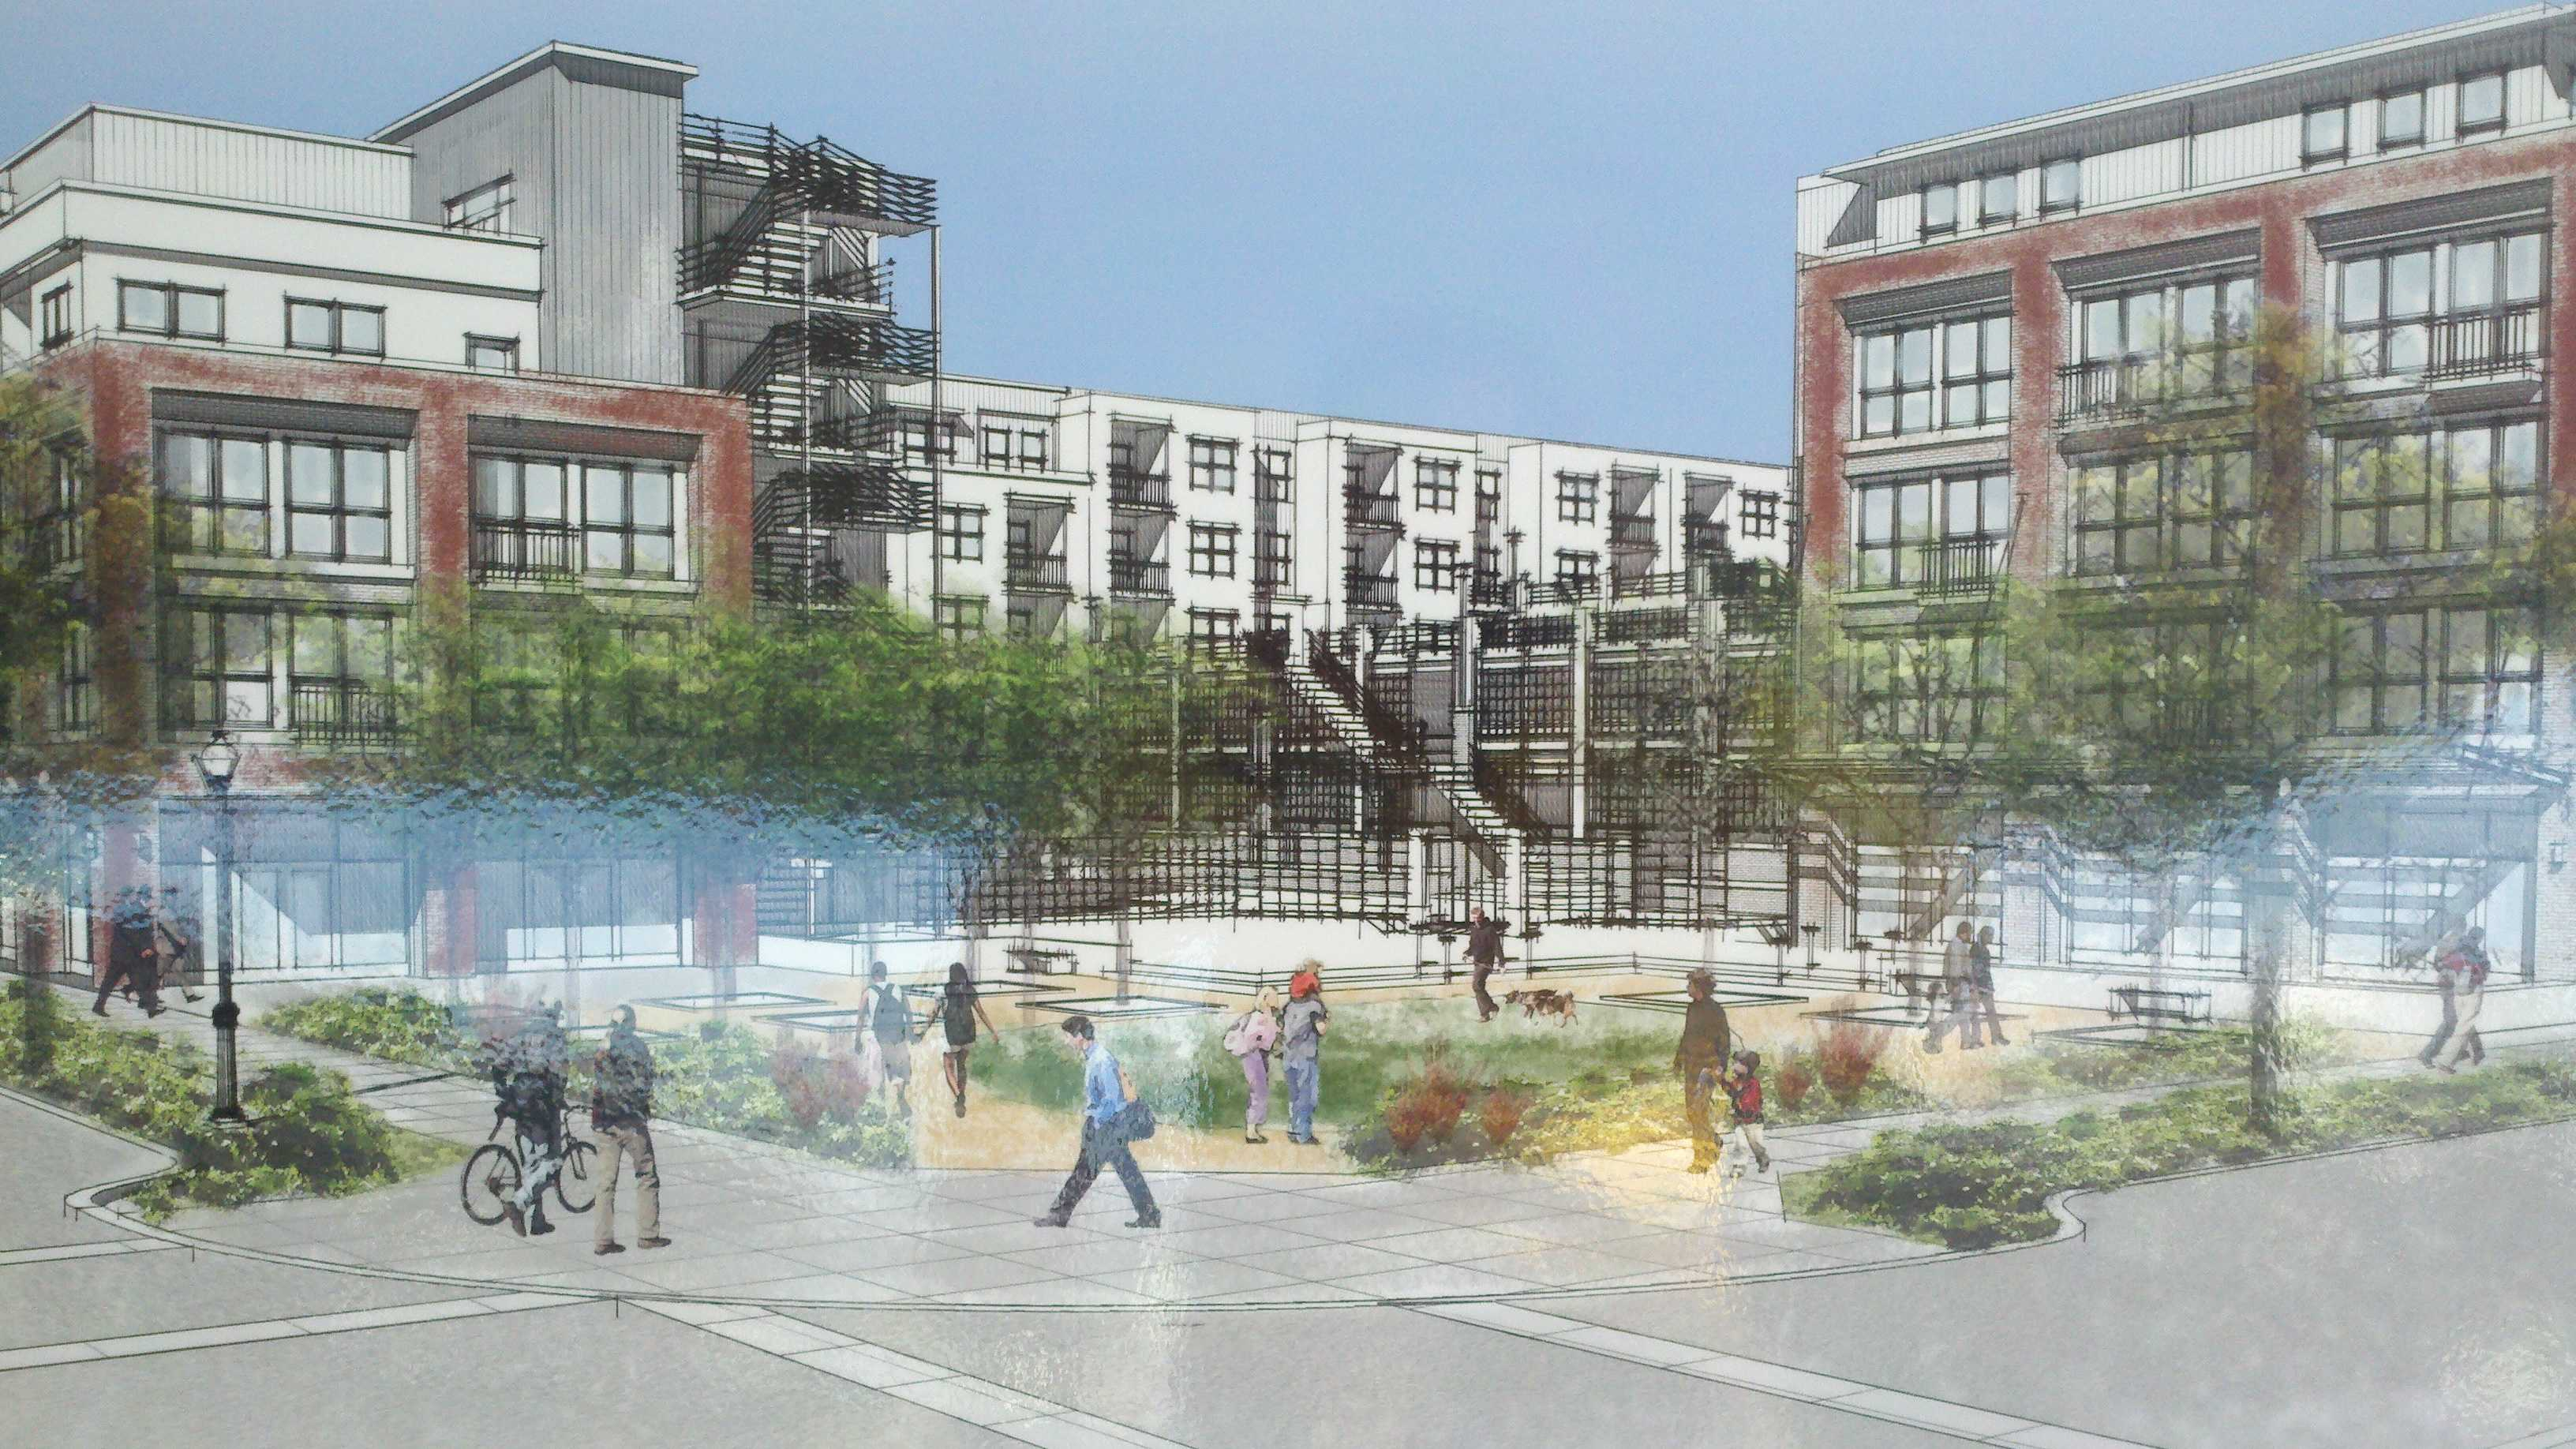 Cannery Place will be the first housing complex built as part of Sacramento's Township 9 development.